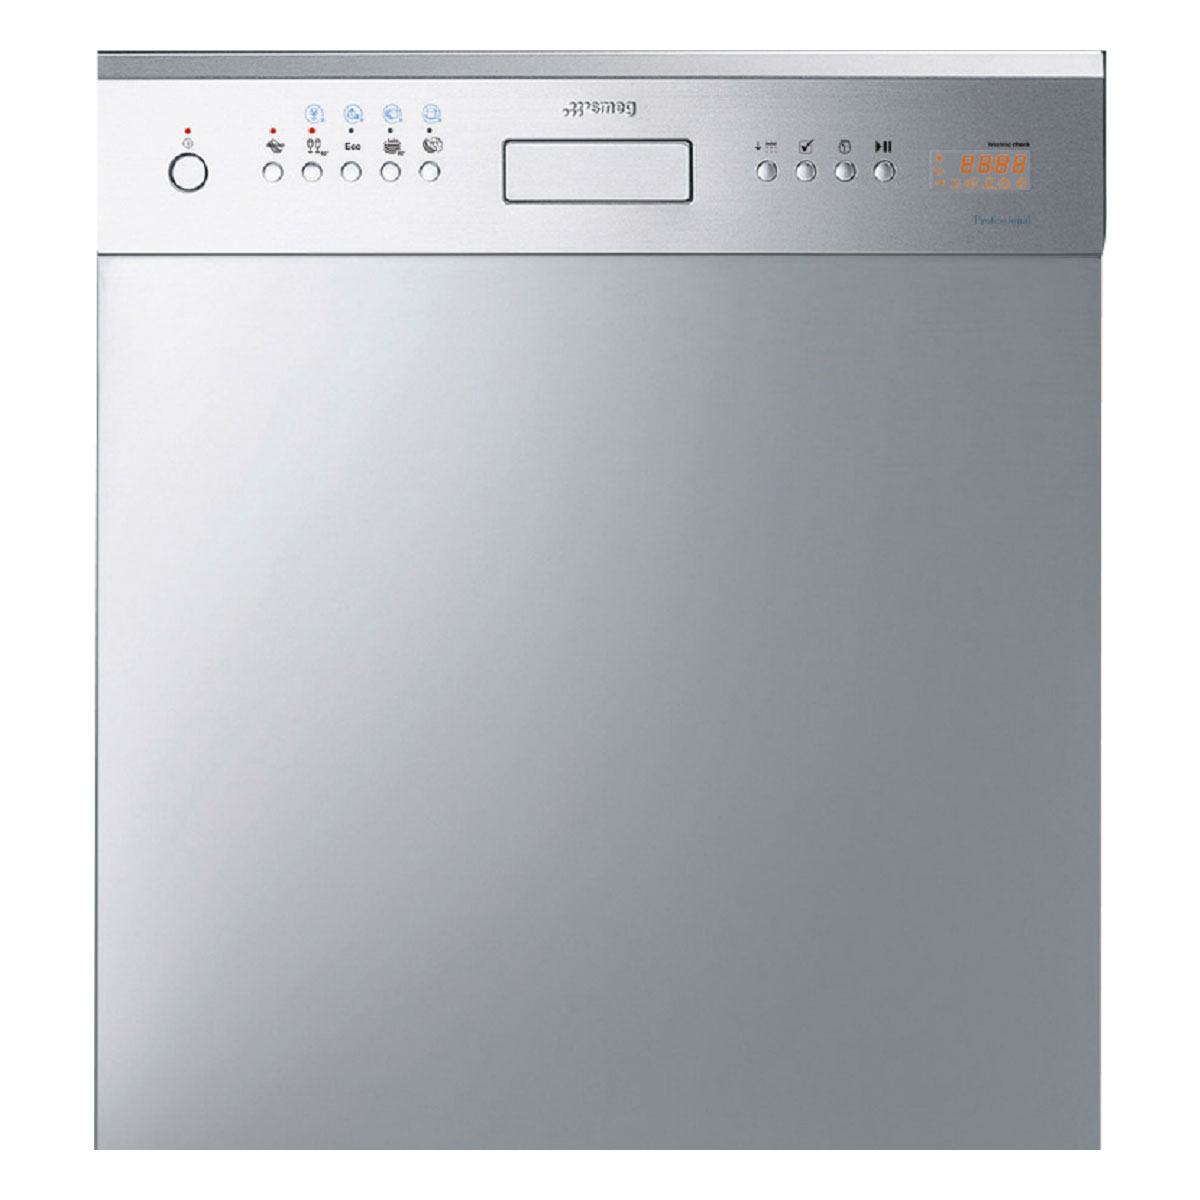 Smeg DWAUP364X Under Bench Dishwasher 36457